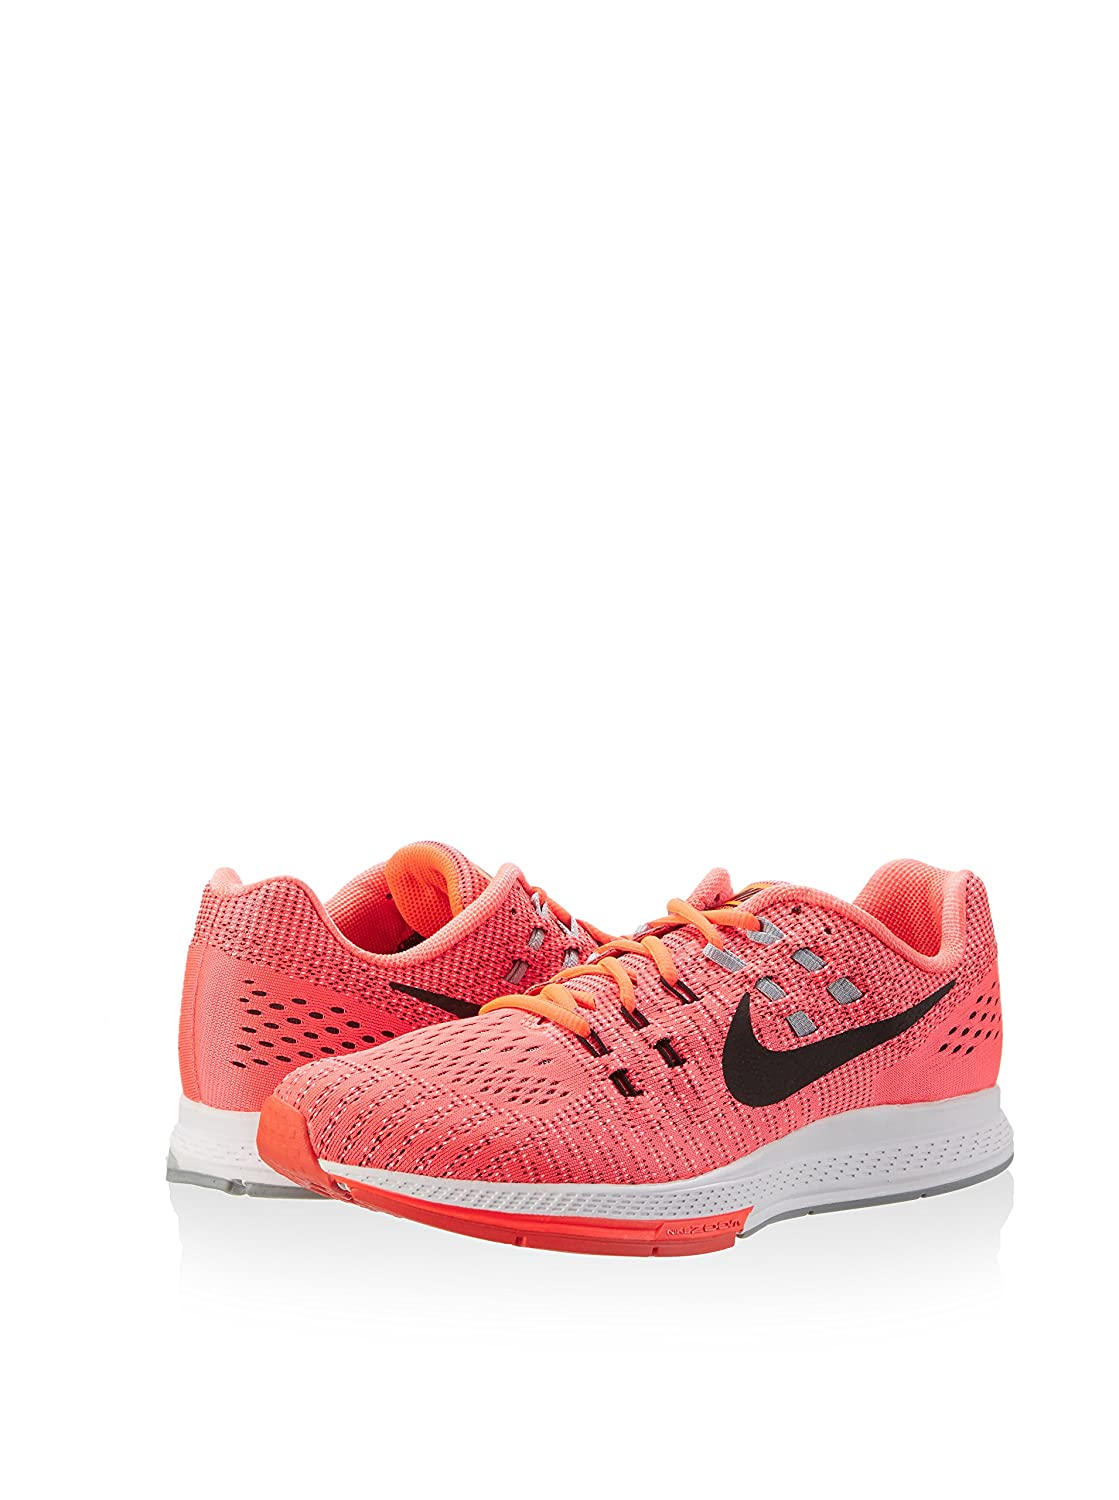 newest dd793 9292f Amazon.com: Nike Air Zoom Structure 19 Running Shoes Men's ...